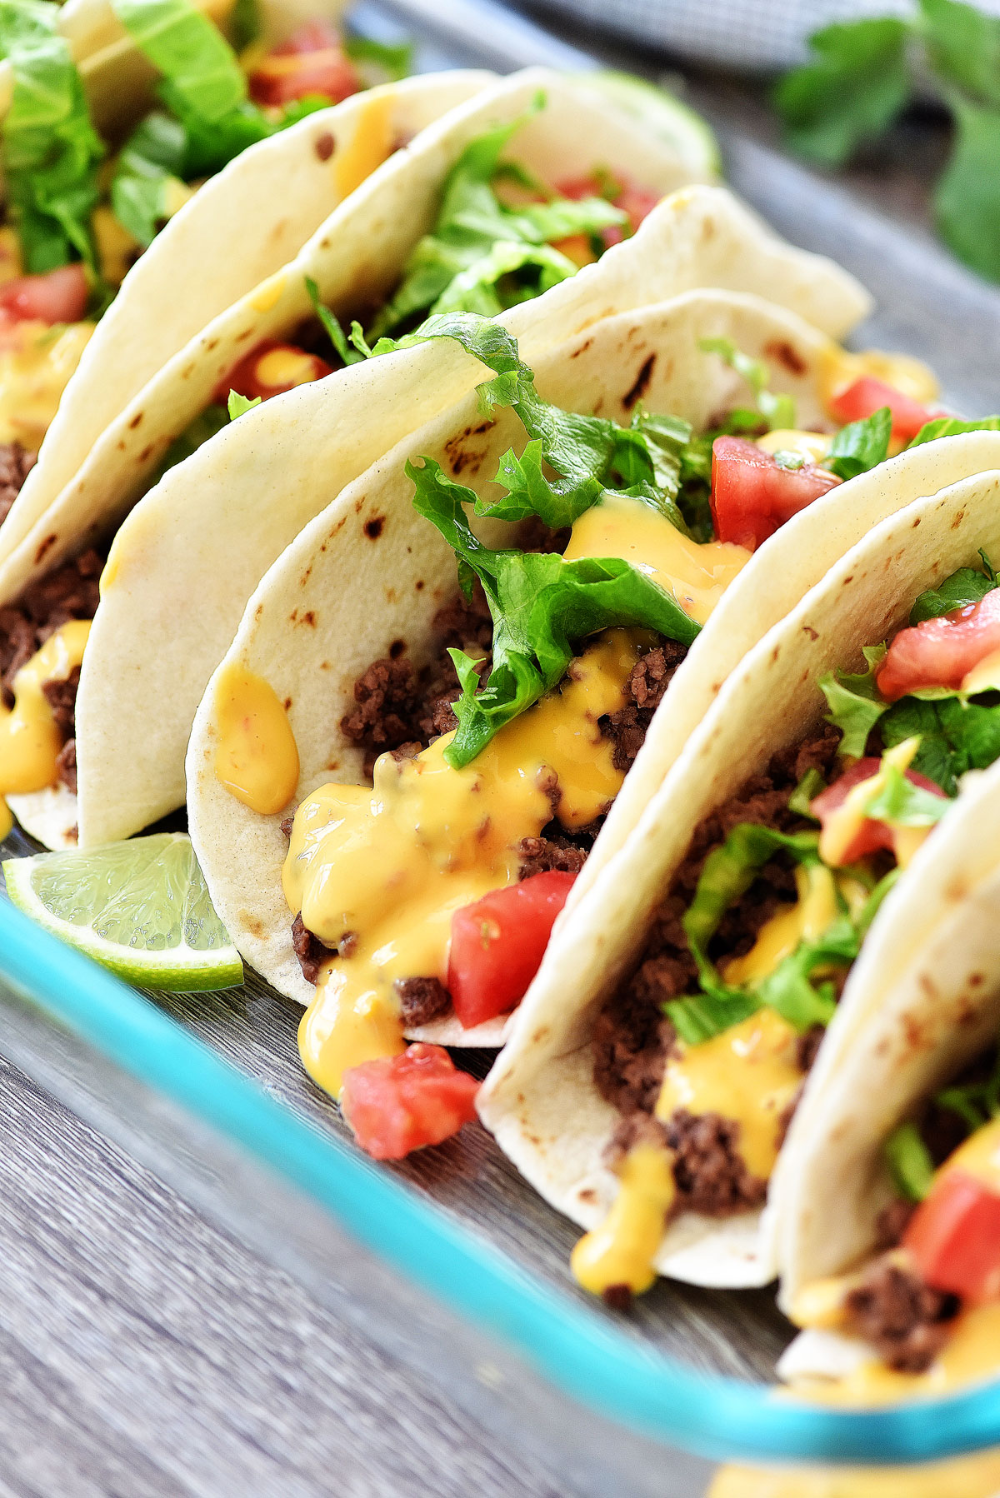 Oven Baked Soft Tacos In 2020 Soft Taco Recipe Ground Beef Soft Tacos Healthy Taco Recipes